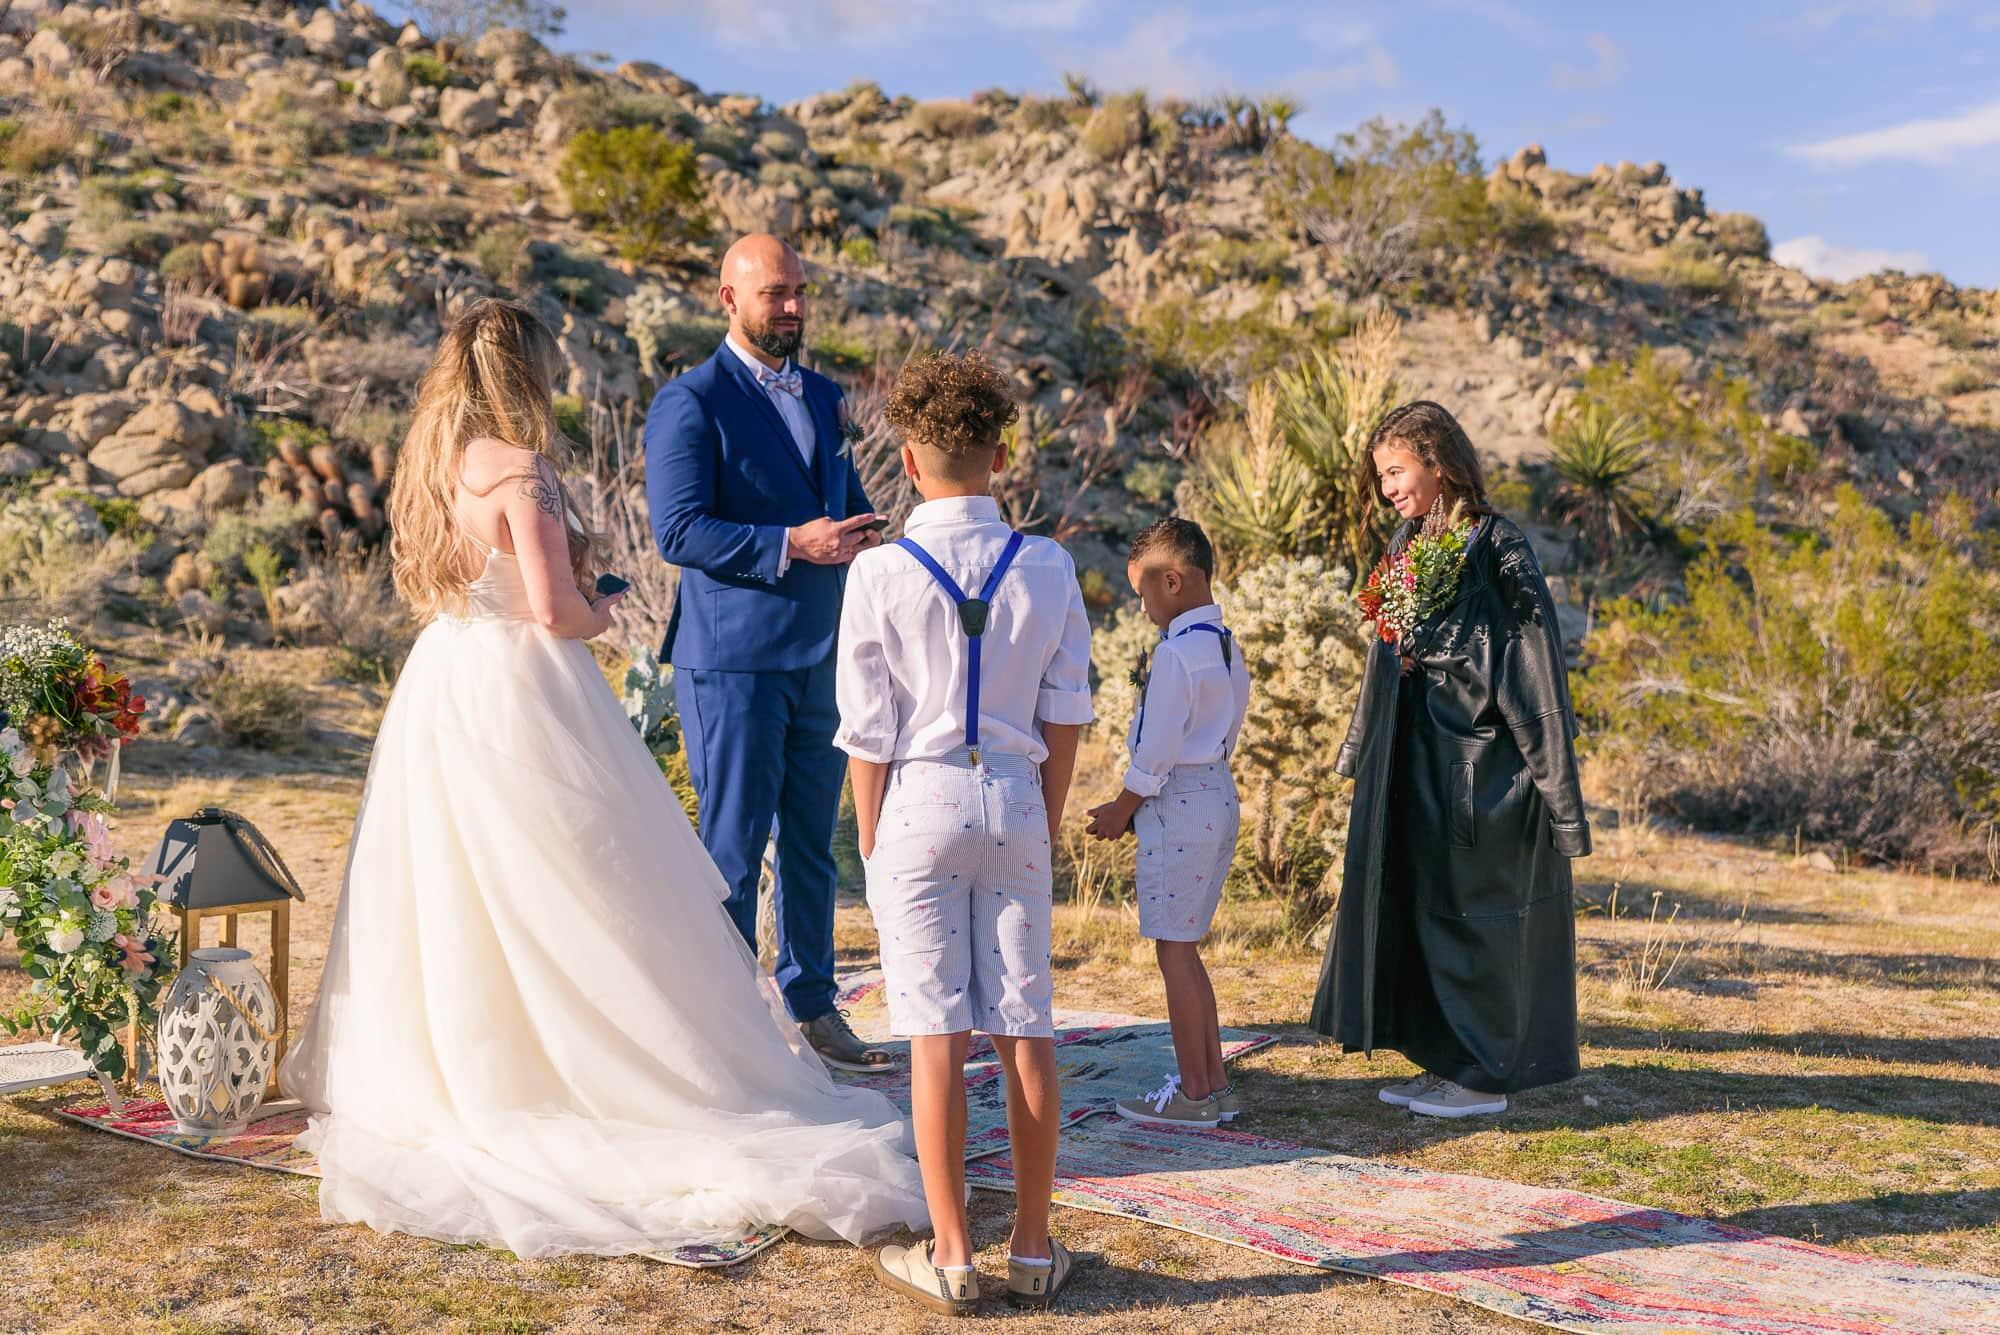 022_Alan_and_Heidi_Joshua_Tree_Spring_Elopement